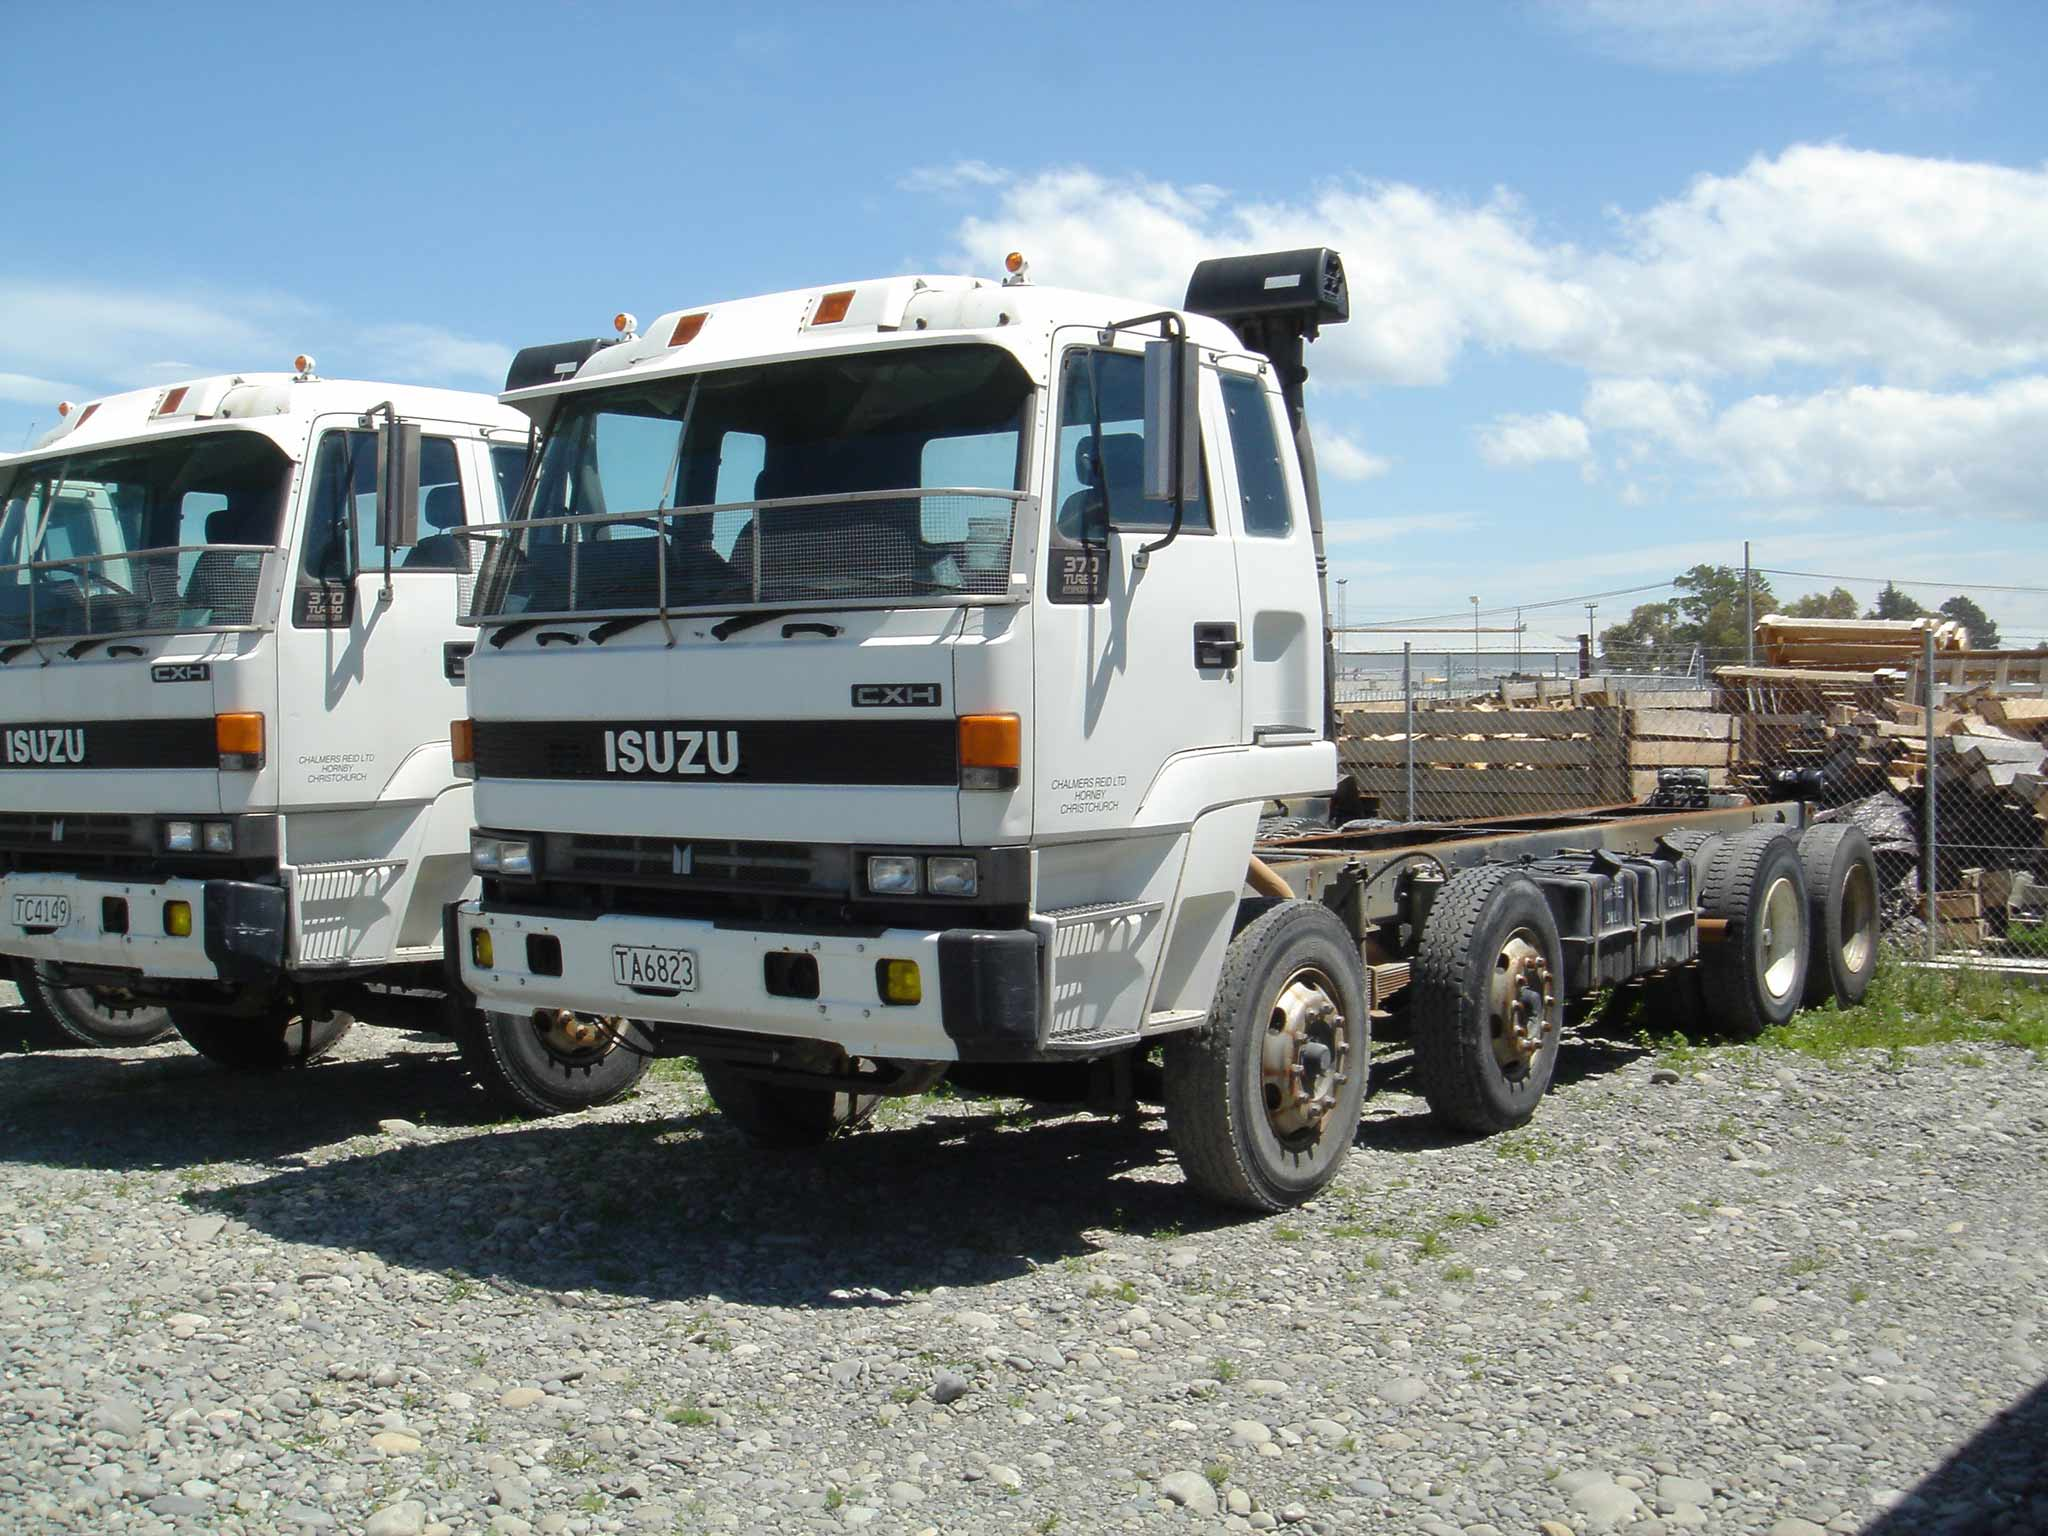 Isuzu : TRUCK AND BUS, QUALITY TRUCK AND BUS SUPPLIERS